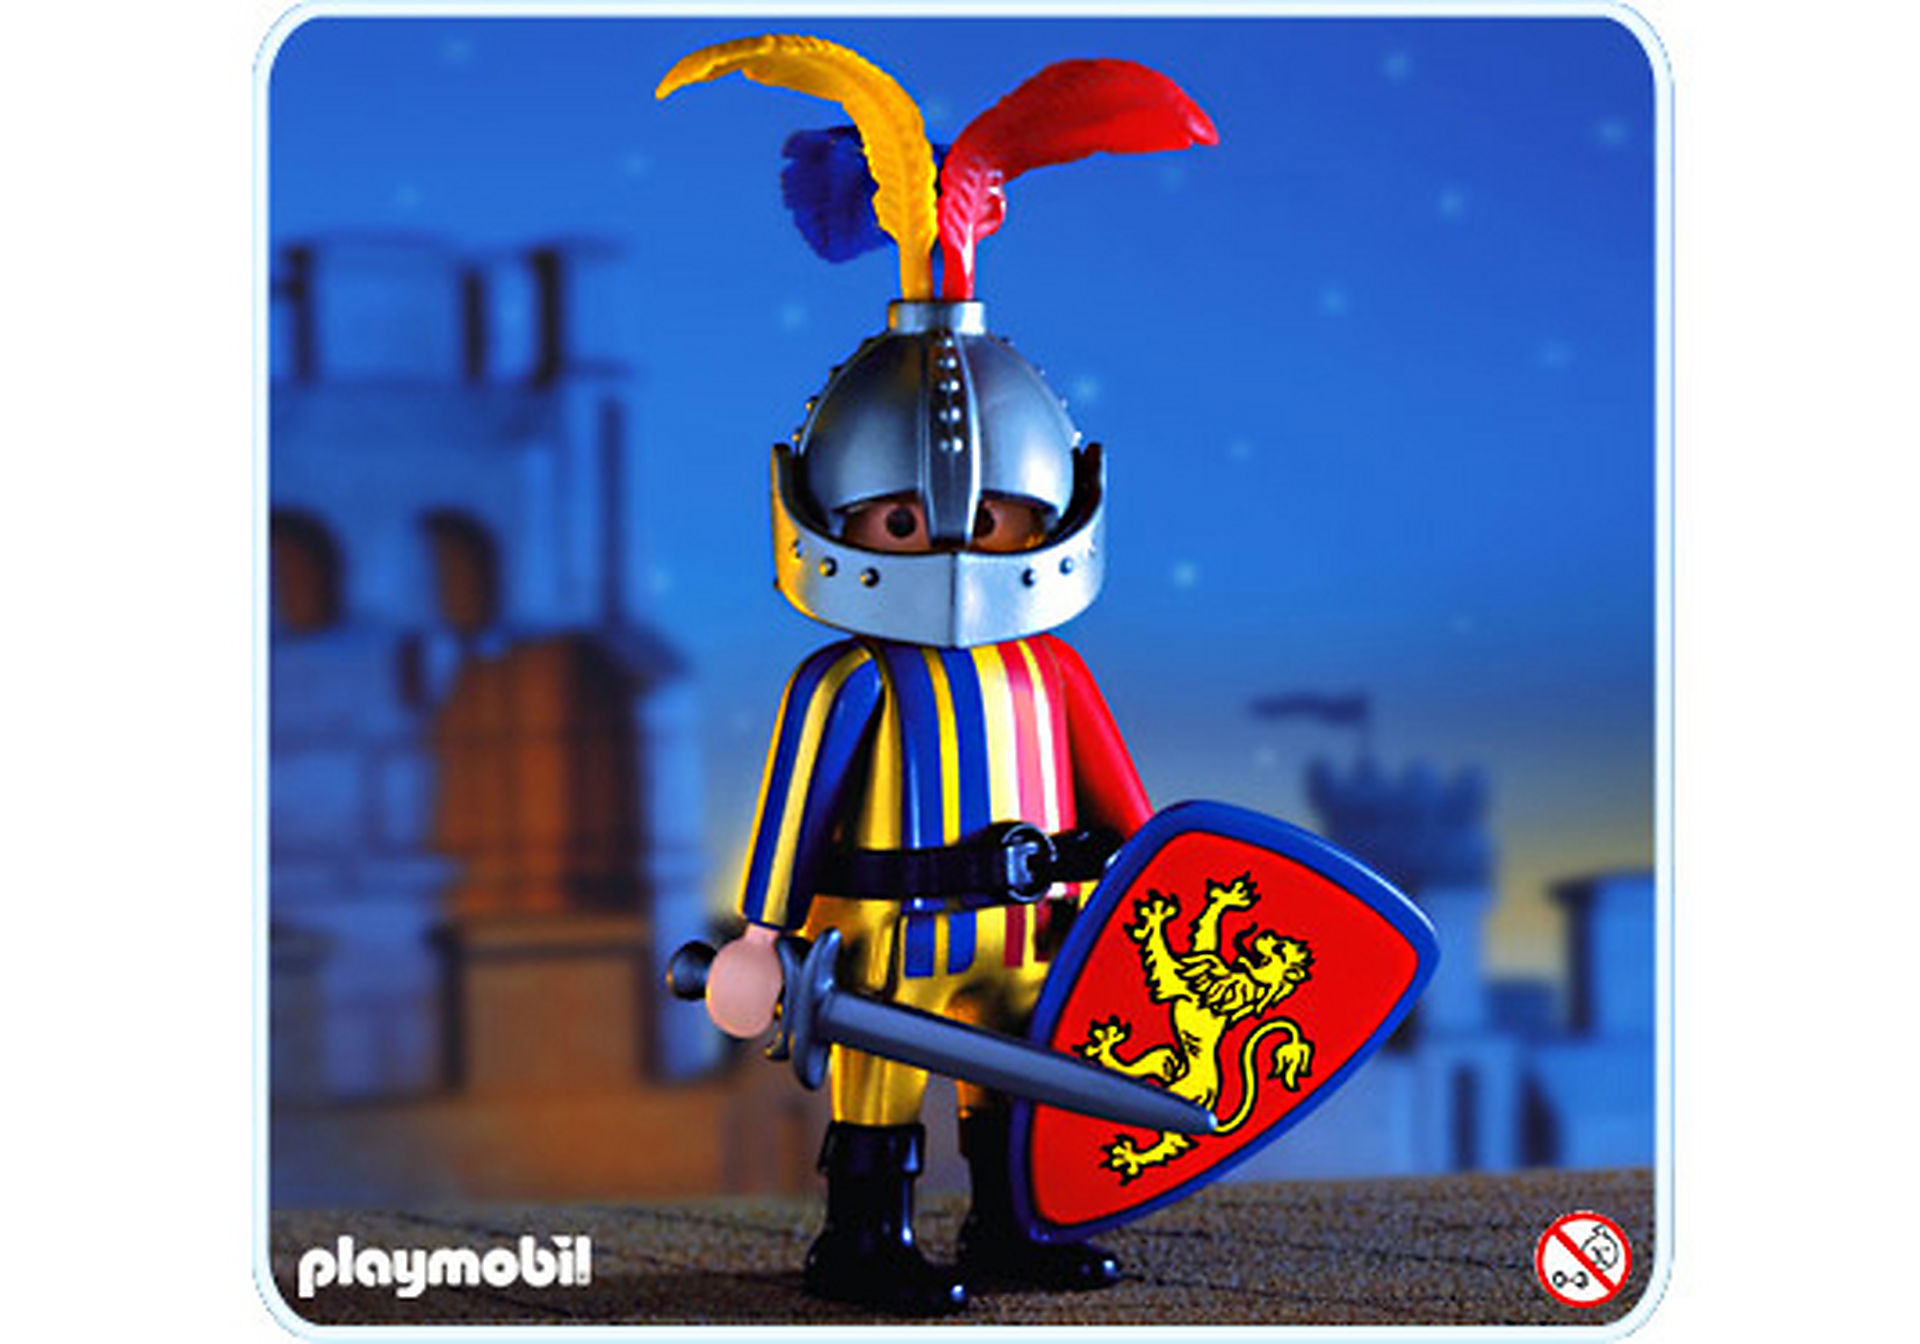 http://media.playmobil.com/i/playmobil/4555-A_product_detail/Chevalier / armure